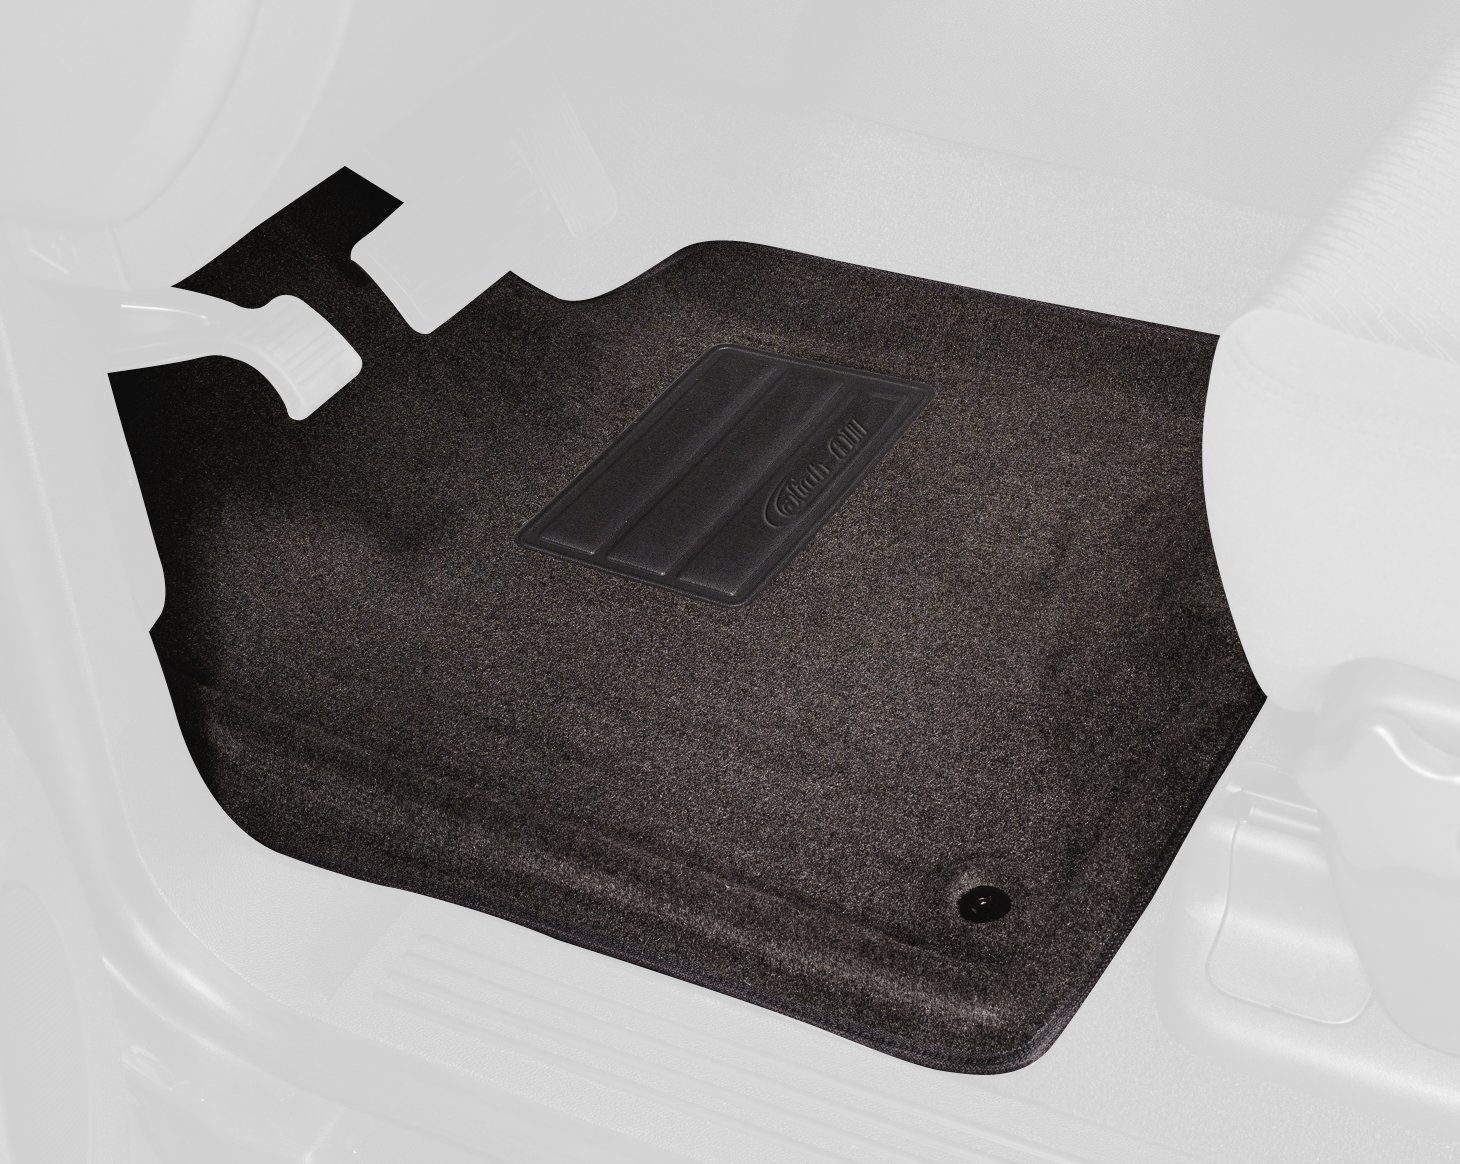 Lund 602143 Catch-All Carpet Charcoal Front Floor Mat - Set of 2